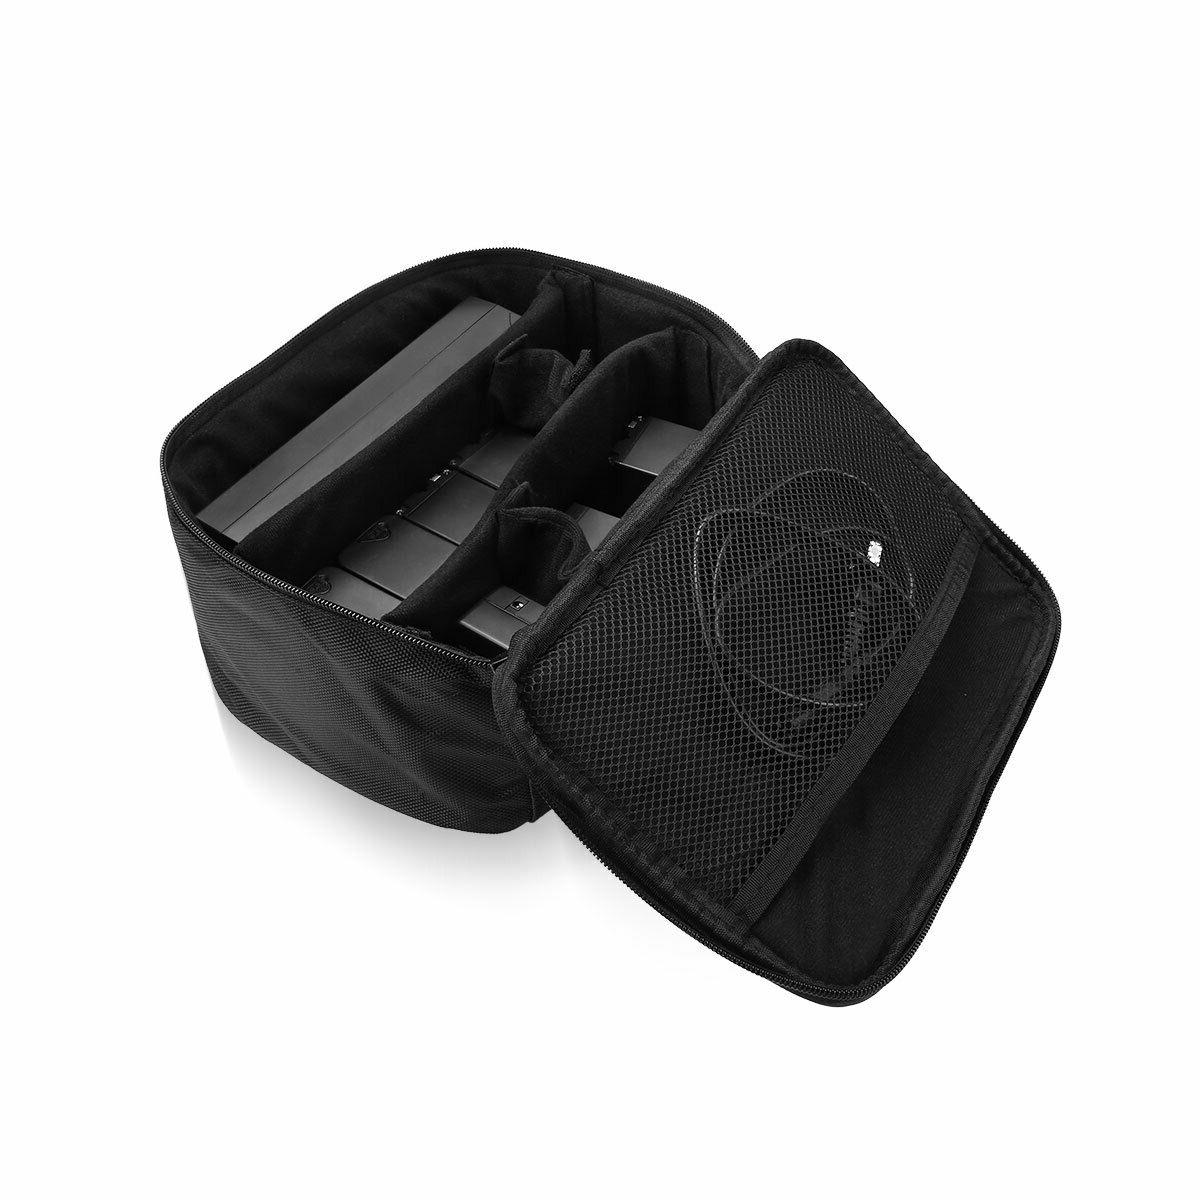 Black Carrying Bag For Nintendo Console